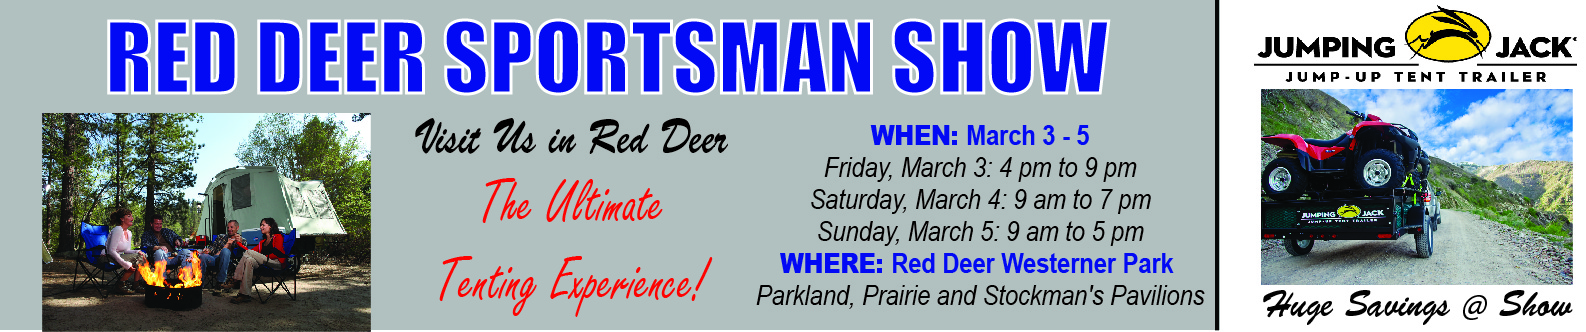 Red Deer Sportsman Show